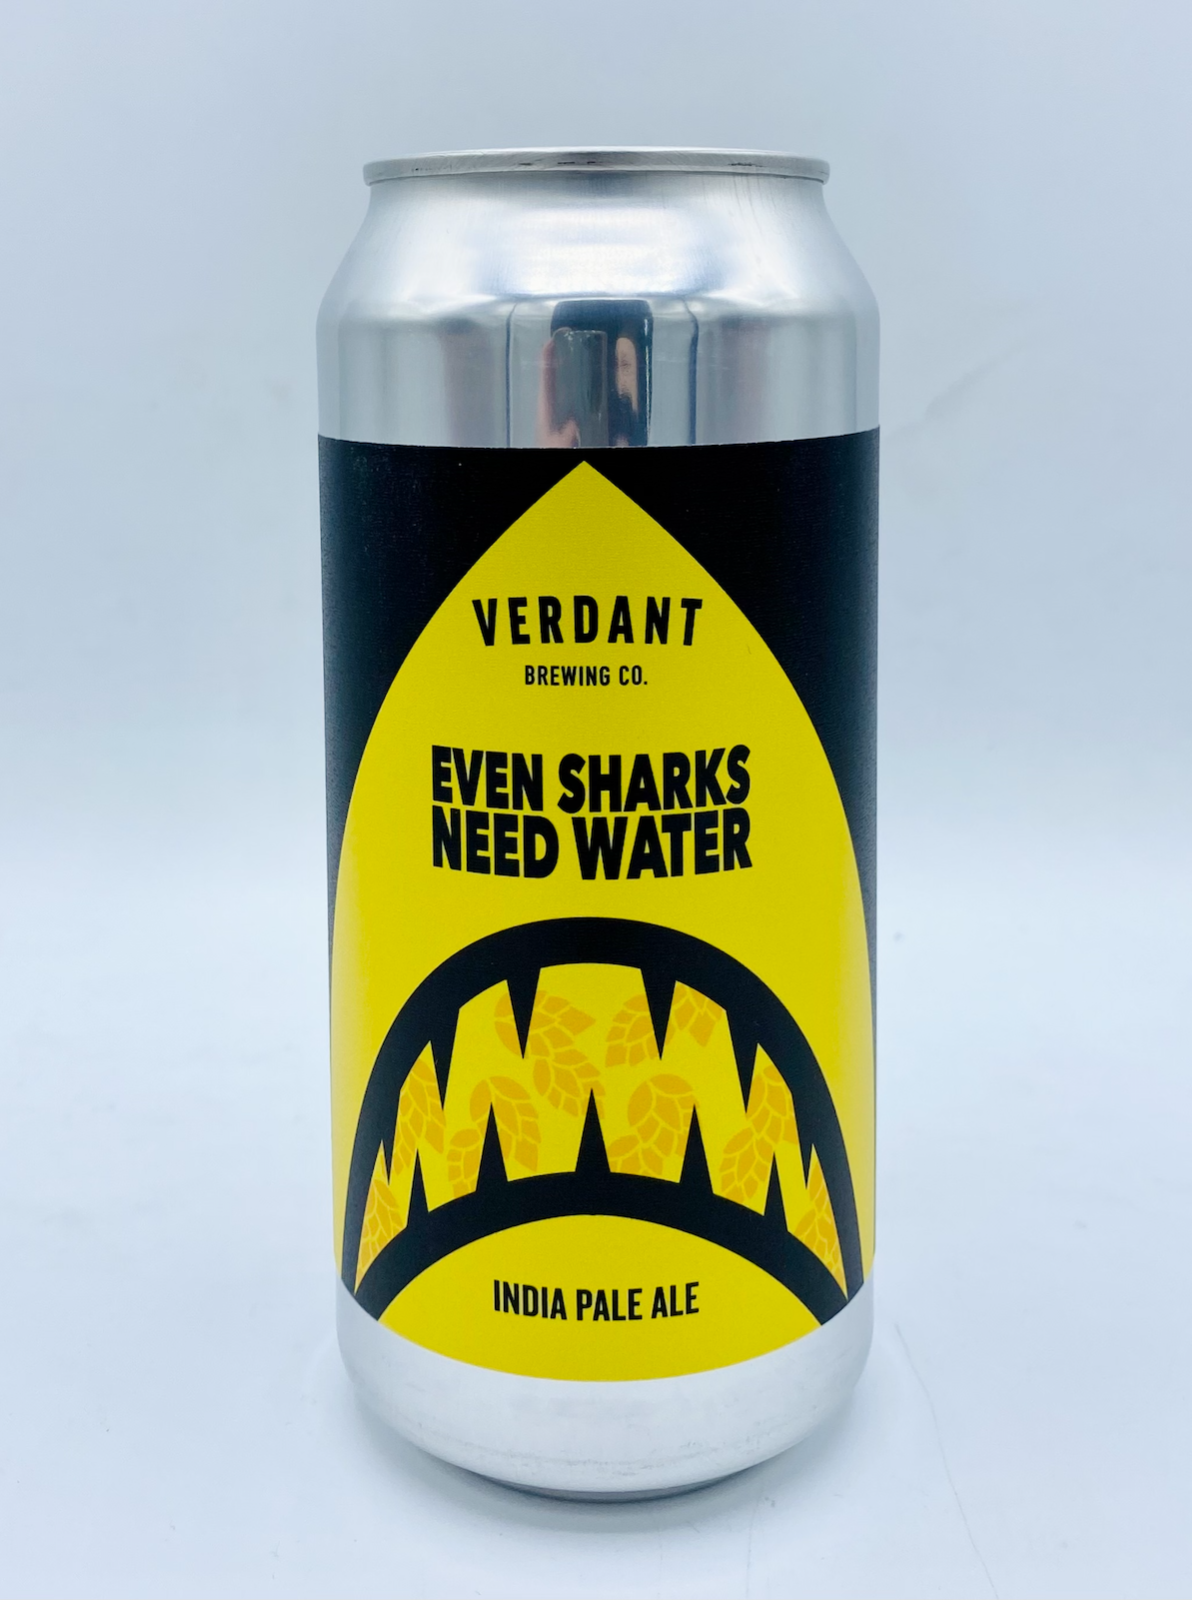 Verdant - Even Sharks Need Water 6.5%